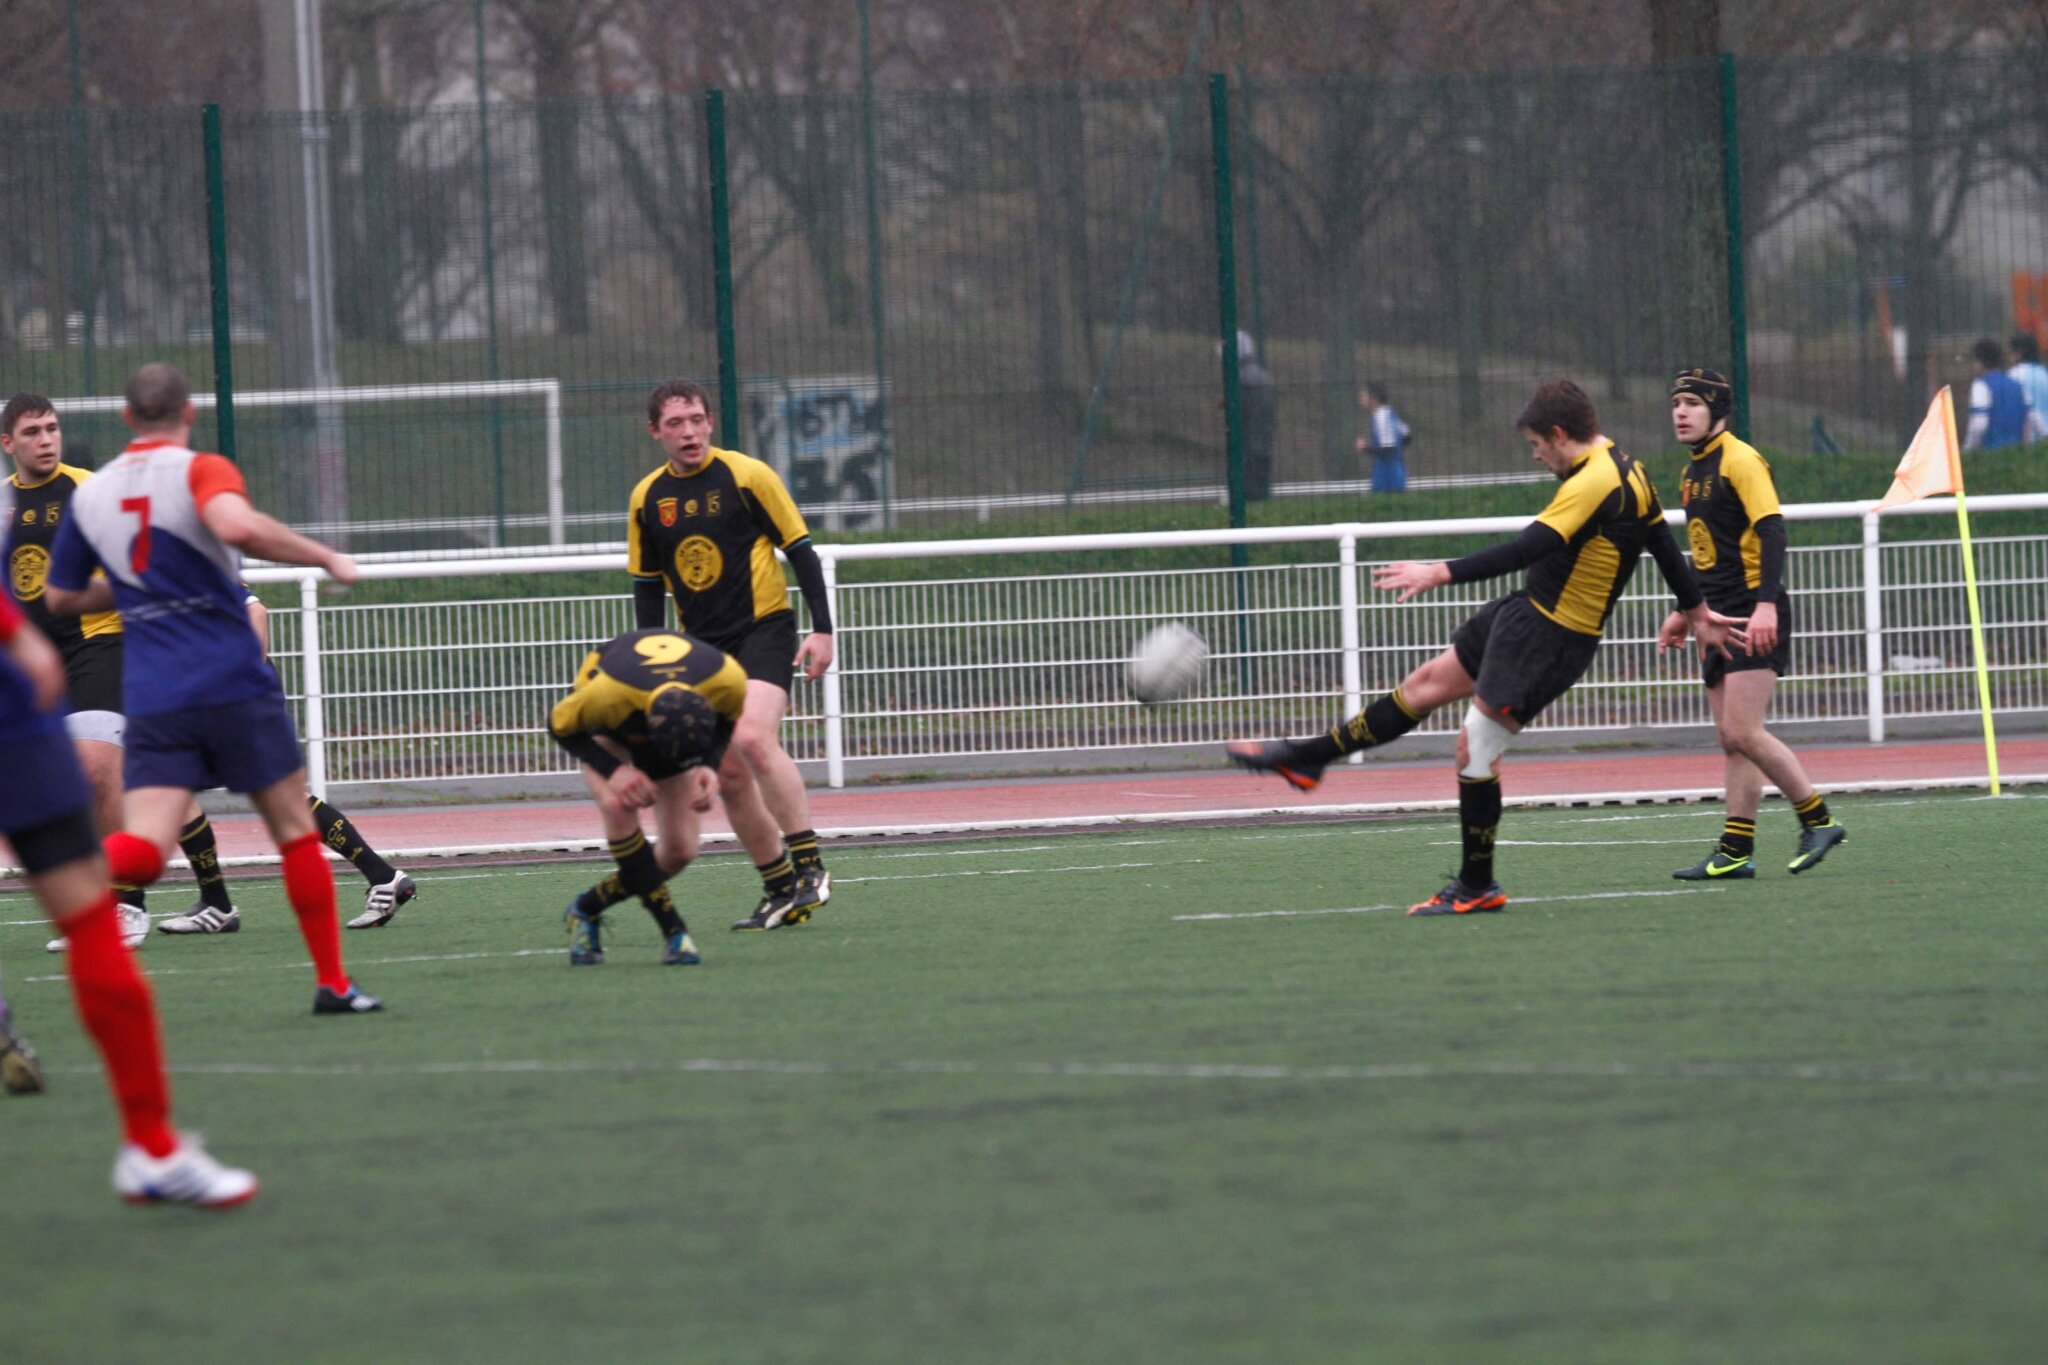 RCP15-RCT-R30